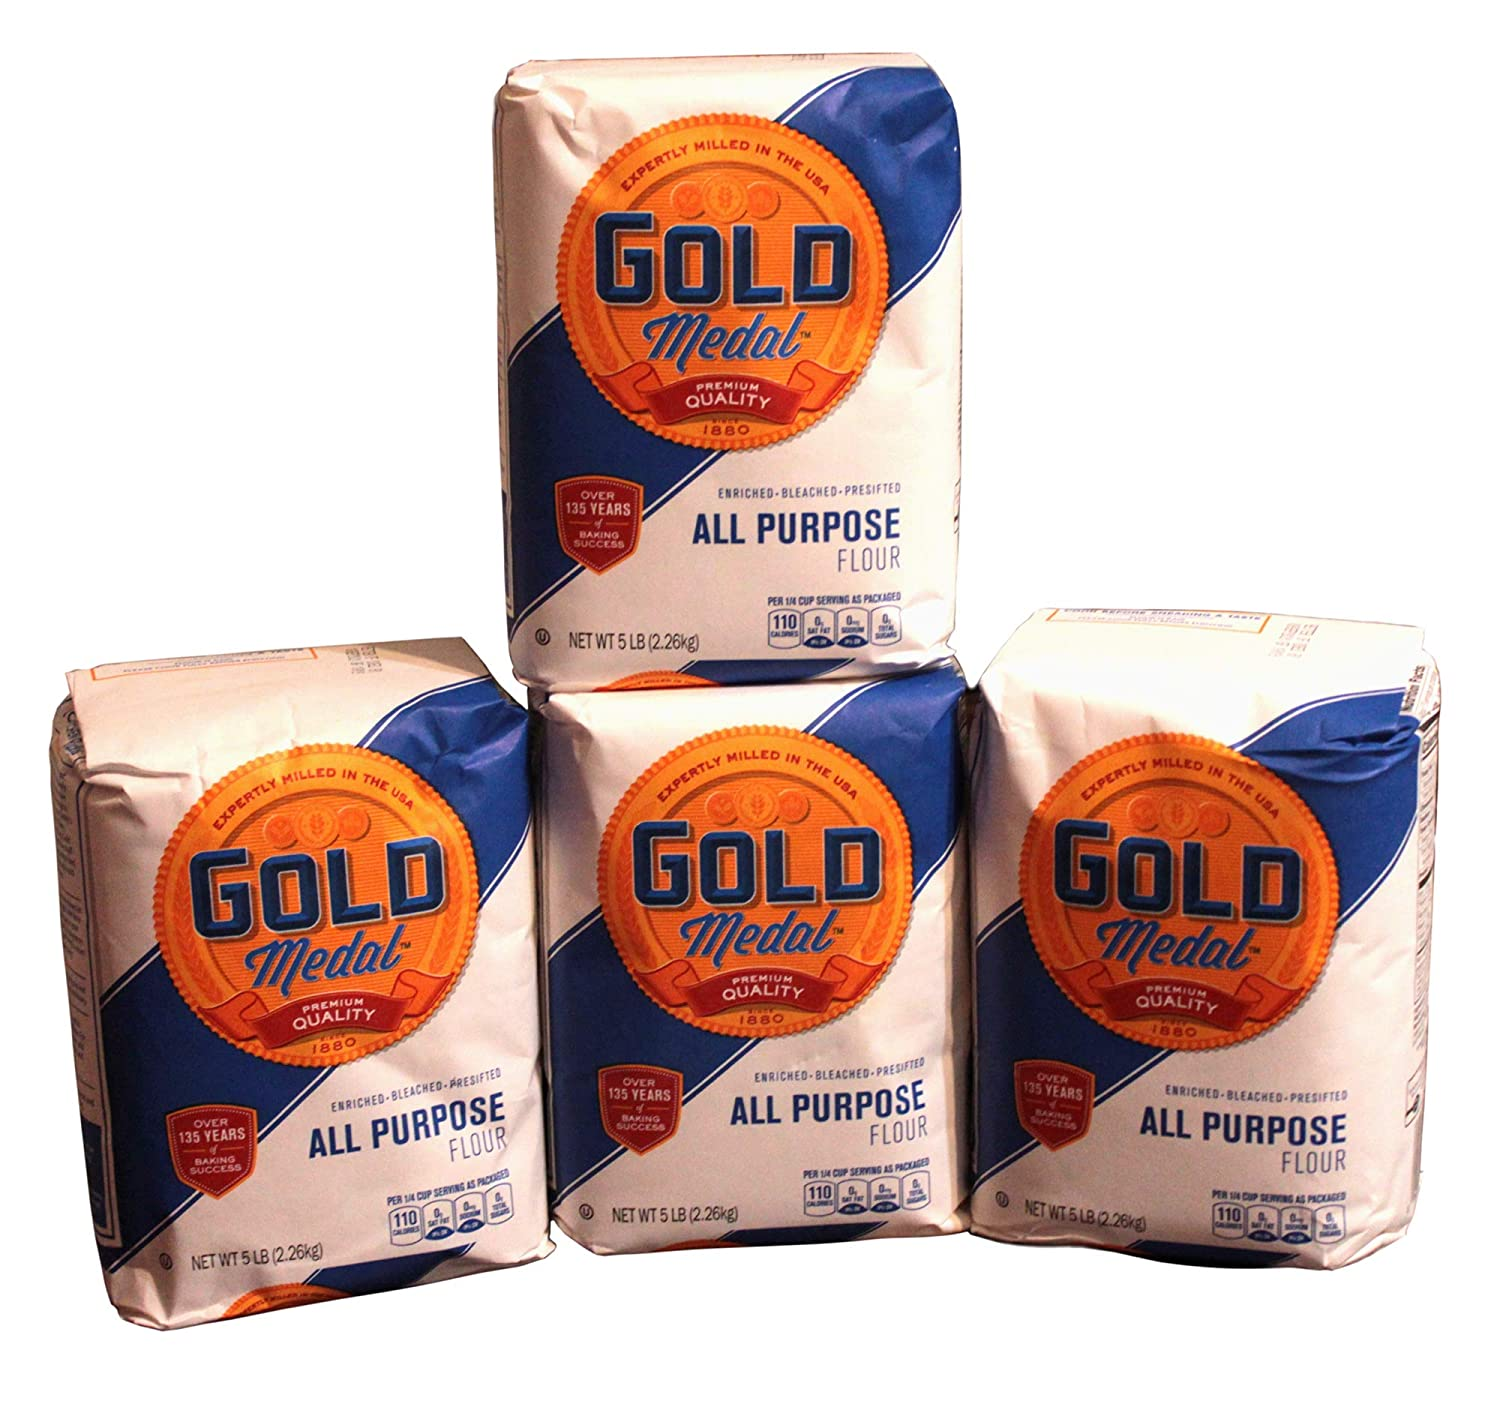 Gold Branded goods Special price Medal- All Purpose Flour 5 4 lb Pack 20LB Total of